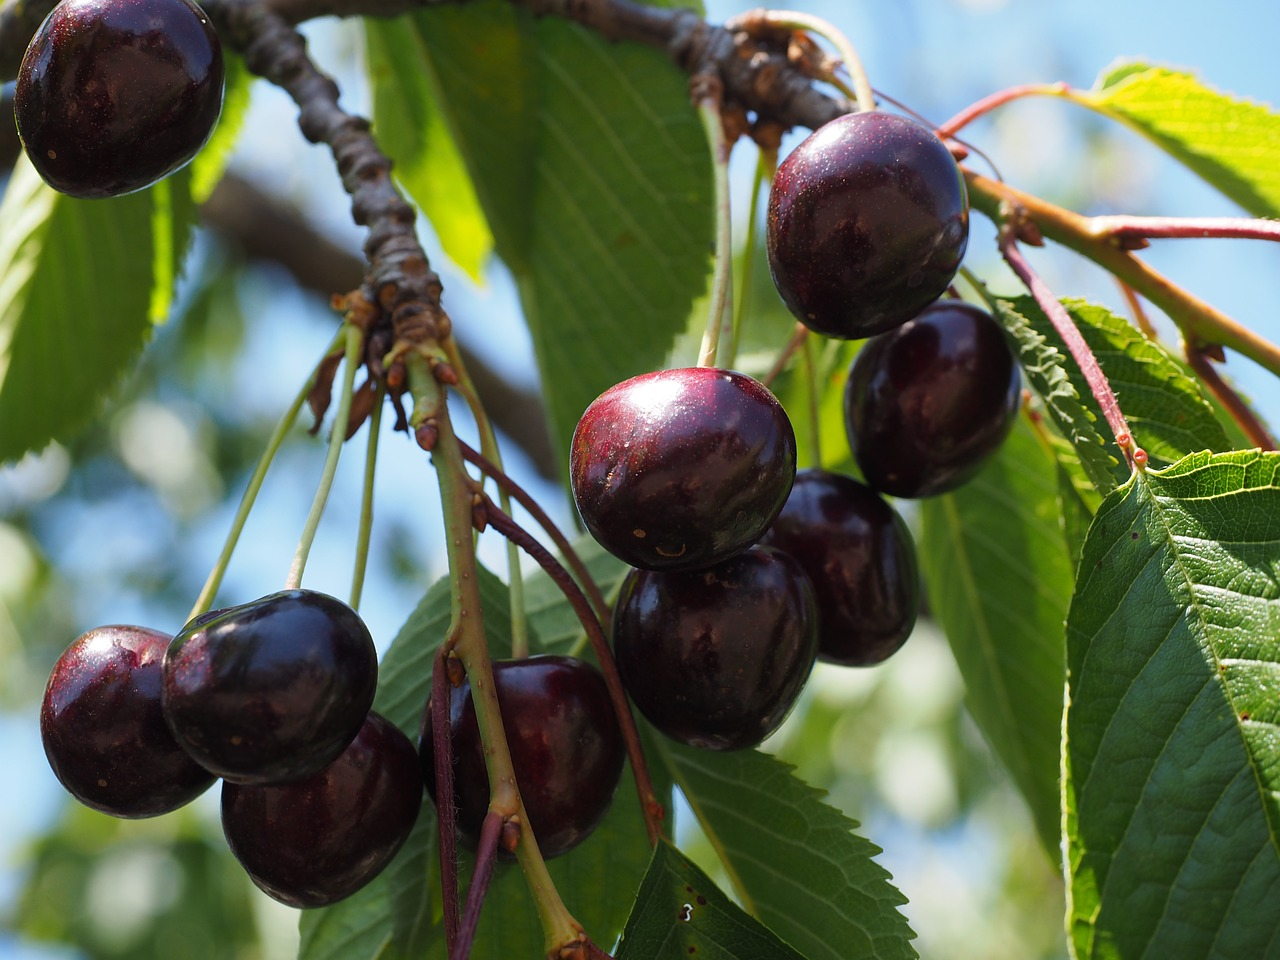 cherries purple black free photo